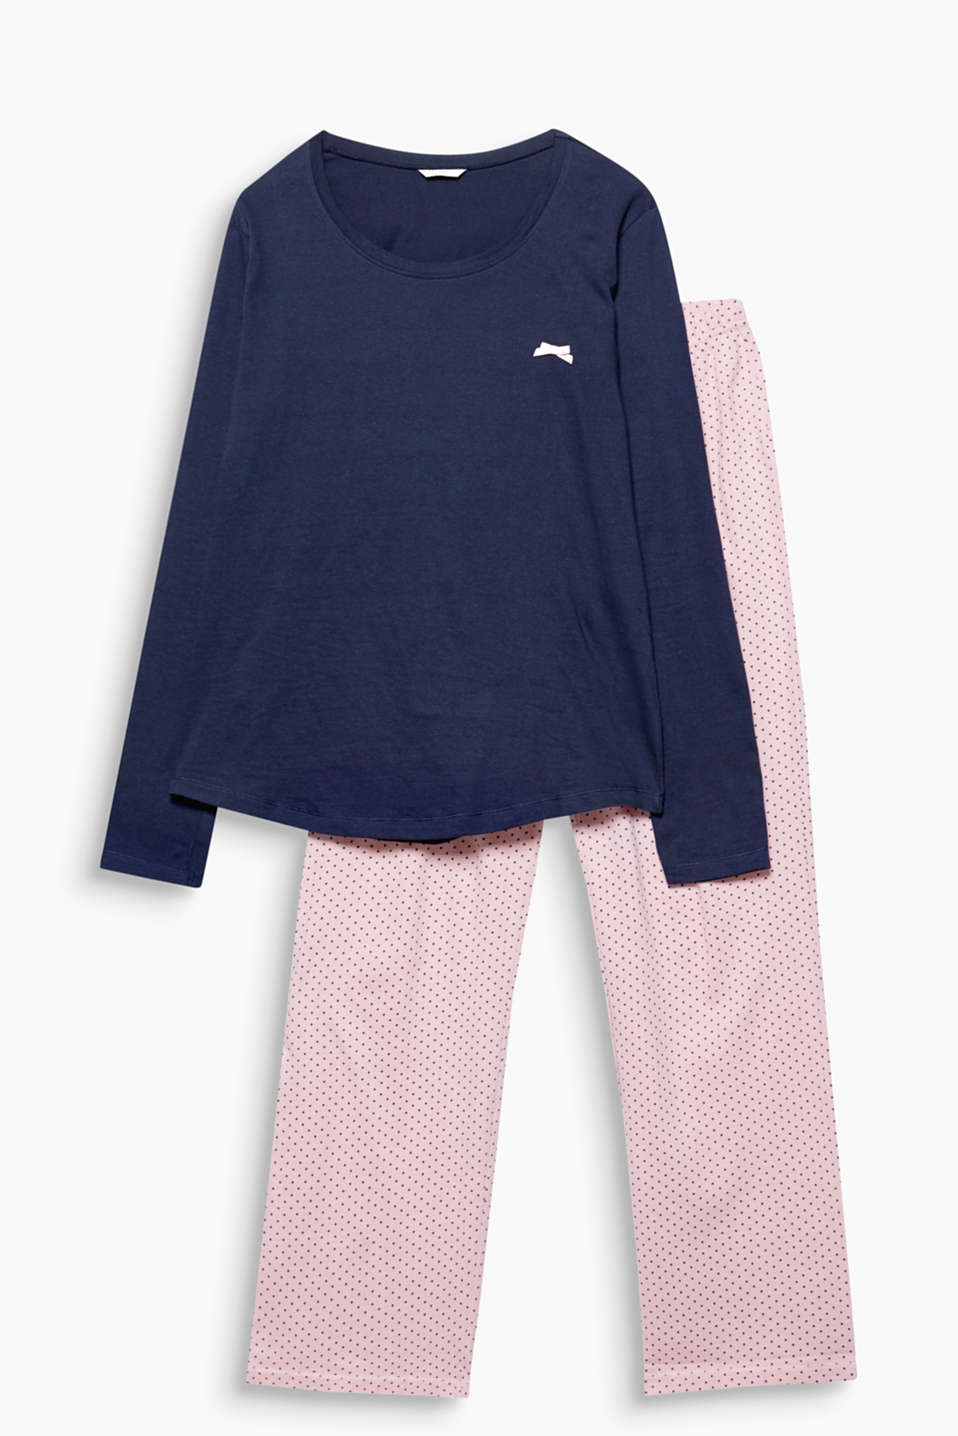 These basic jersey pyjamas featuring cool, polka dot bottoms feel soft and snug against the skin!